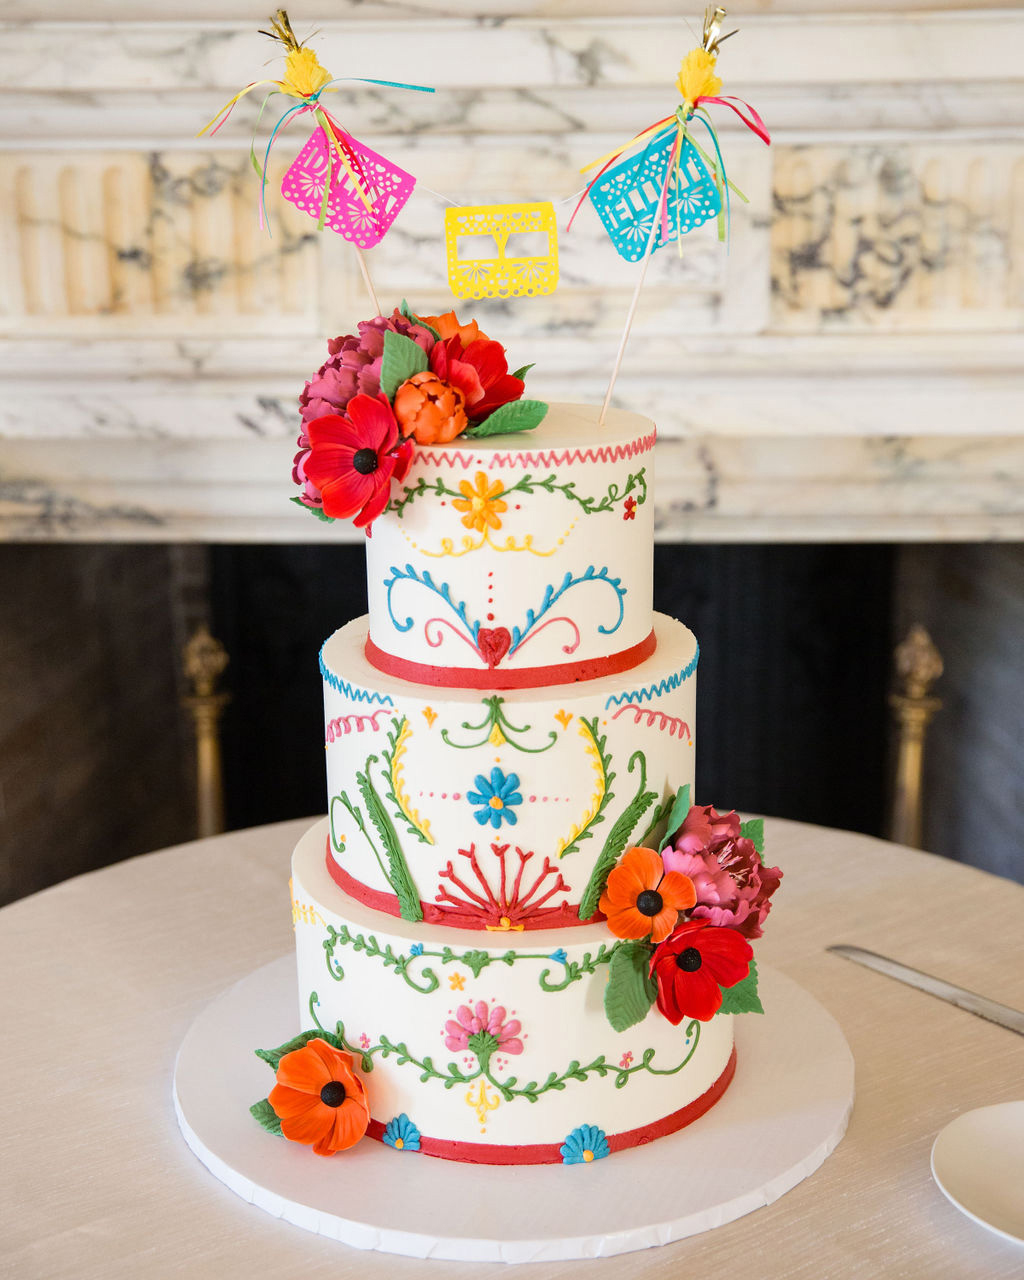 dalila elliot colorful wedding cake